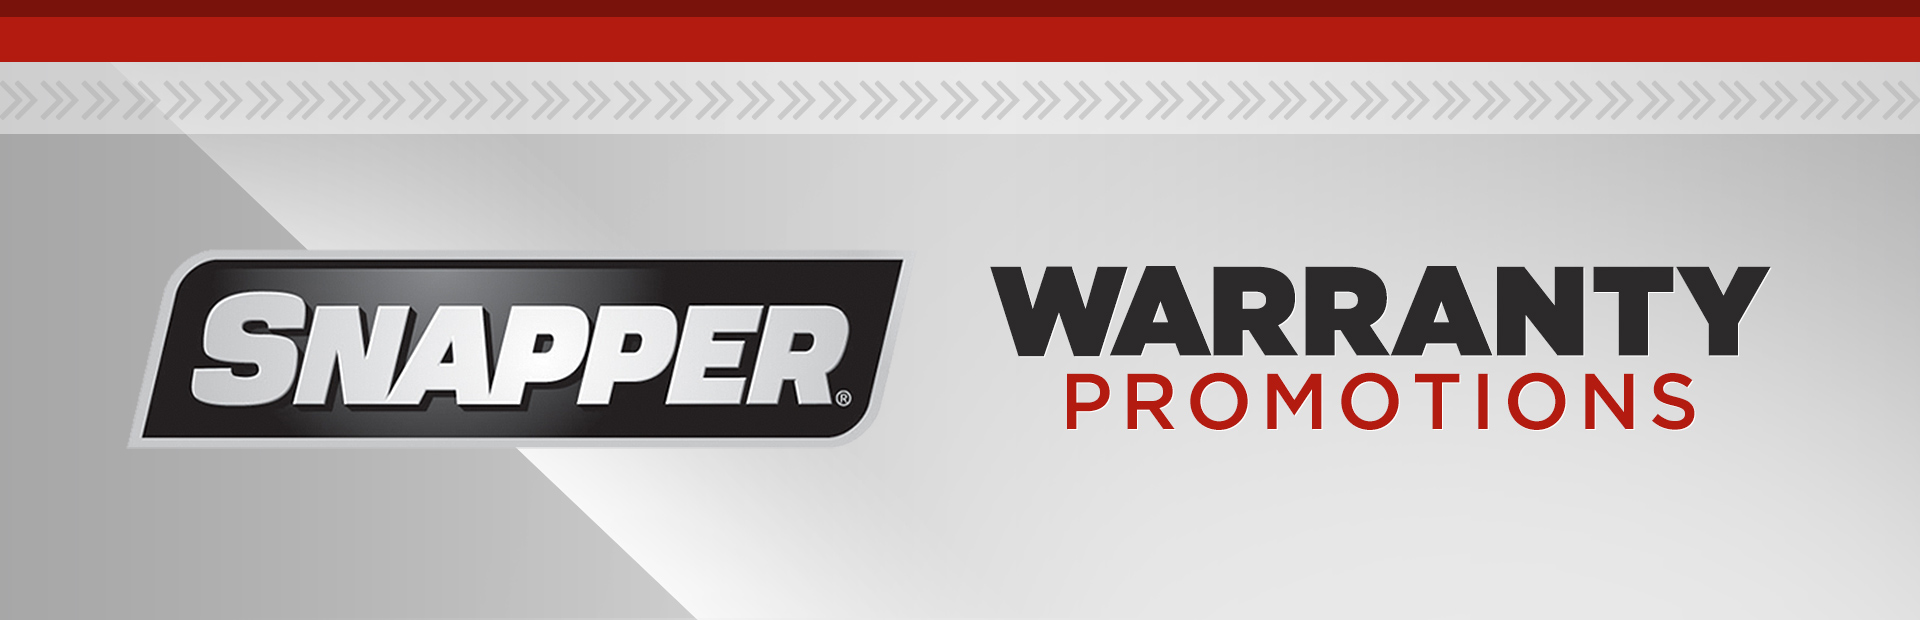 Snapper: Snapper Warranty Promotions